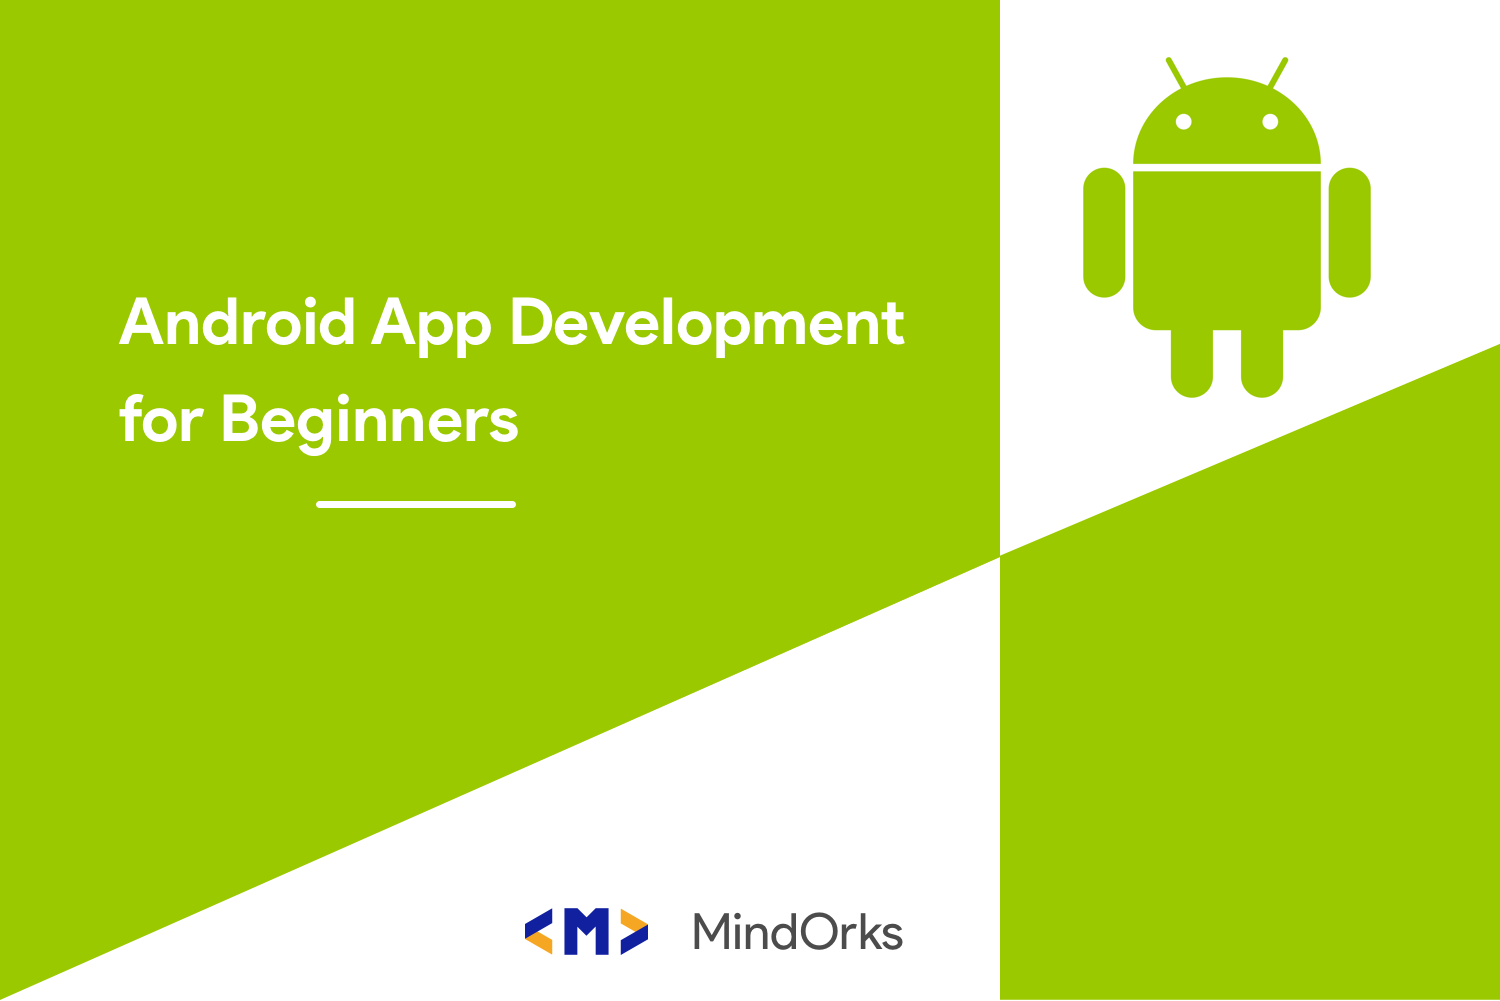 Android App Development Online Course For Beginners